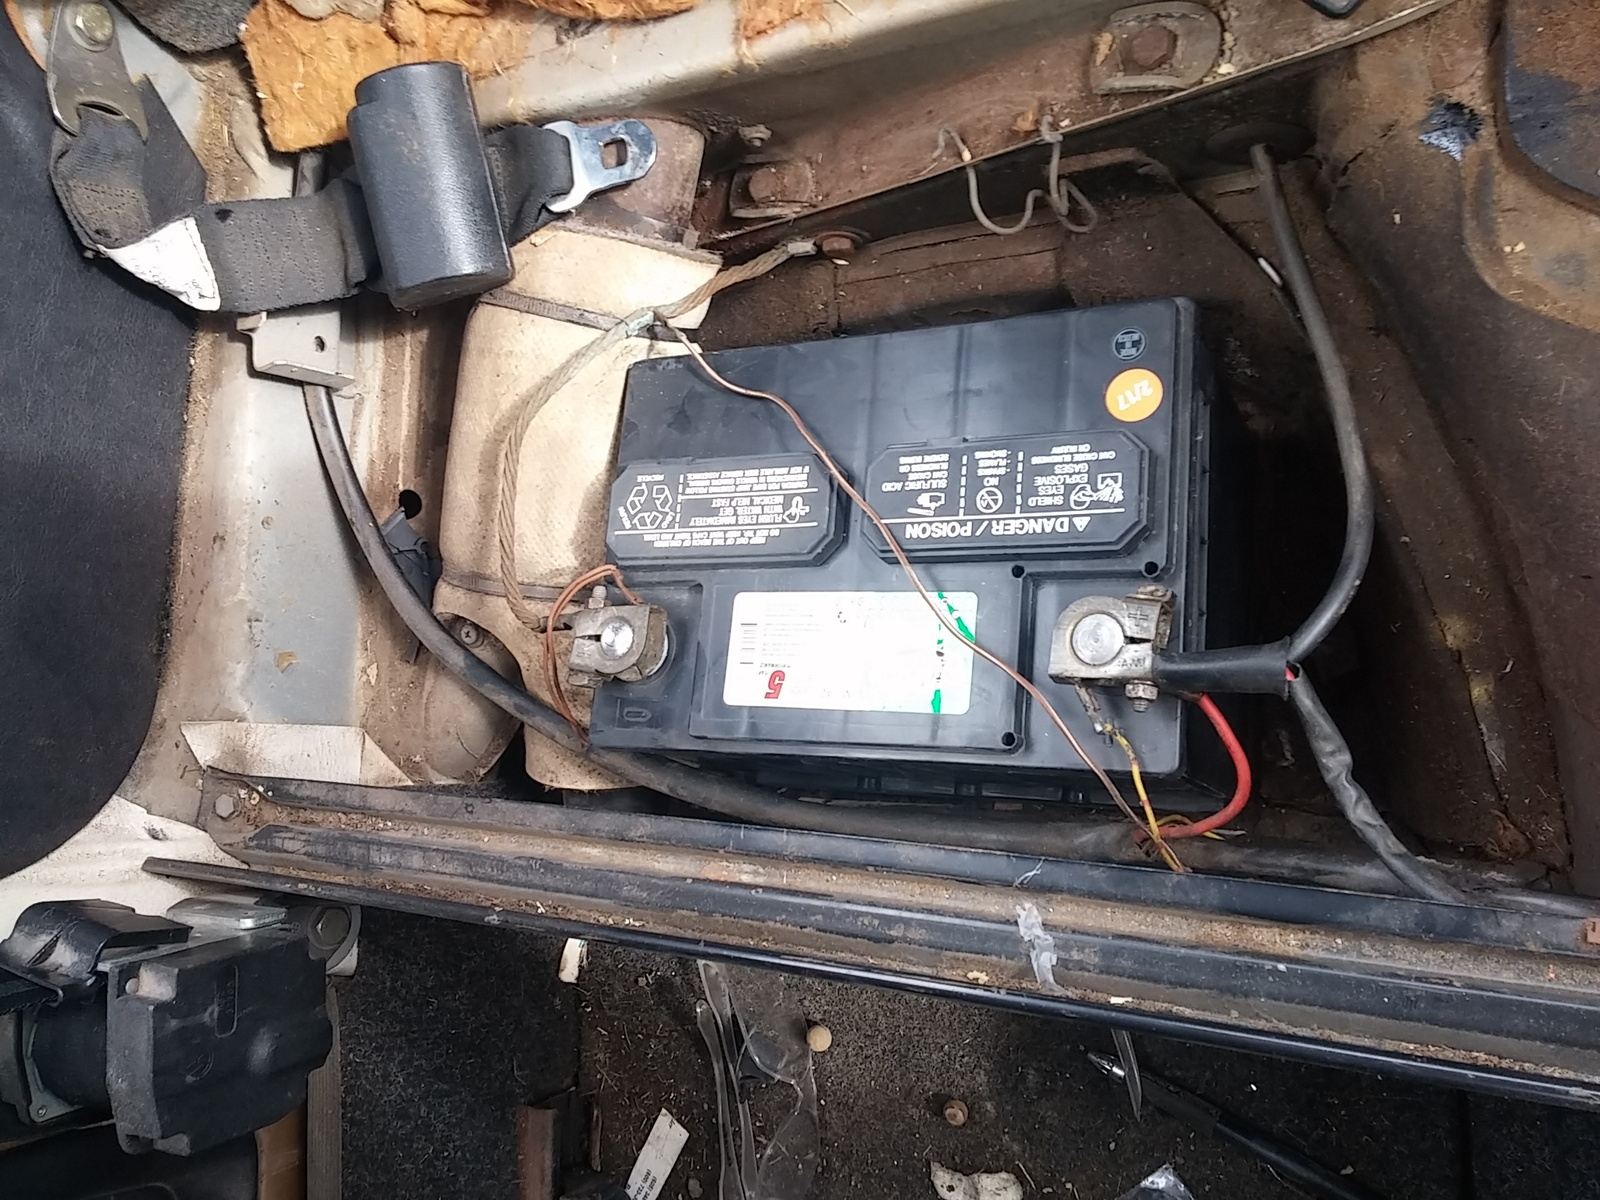 Volkswagen Beetle Questions - 1976 Bug wont turn over after installing new battery - CarGurus